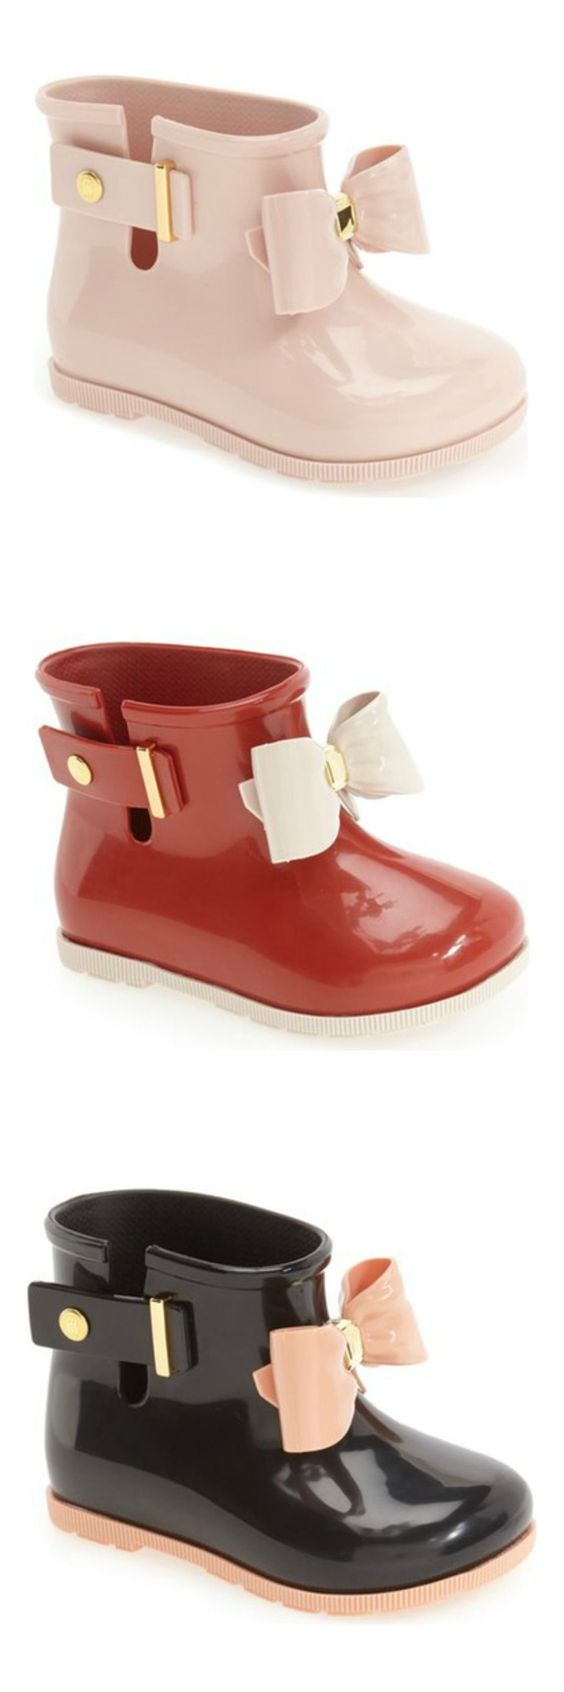 Absolutely adoring these Mini Melissa rain boots! An over-sized bow lends a playful touch to these puddle-ready boots in pink, red and black.